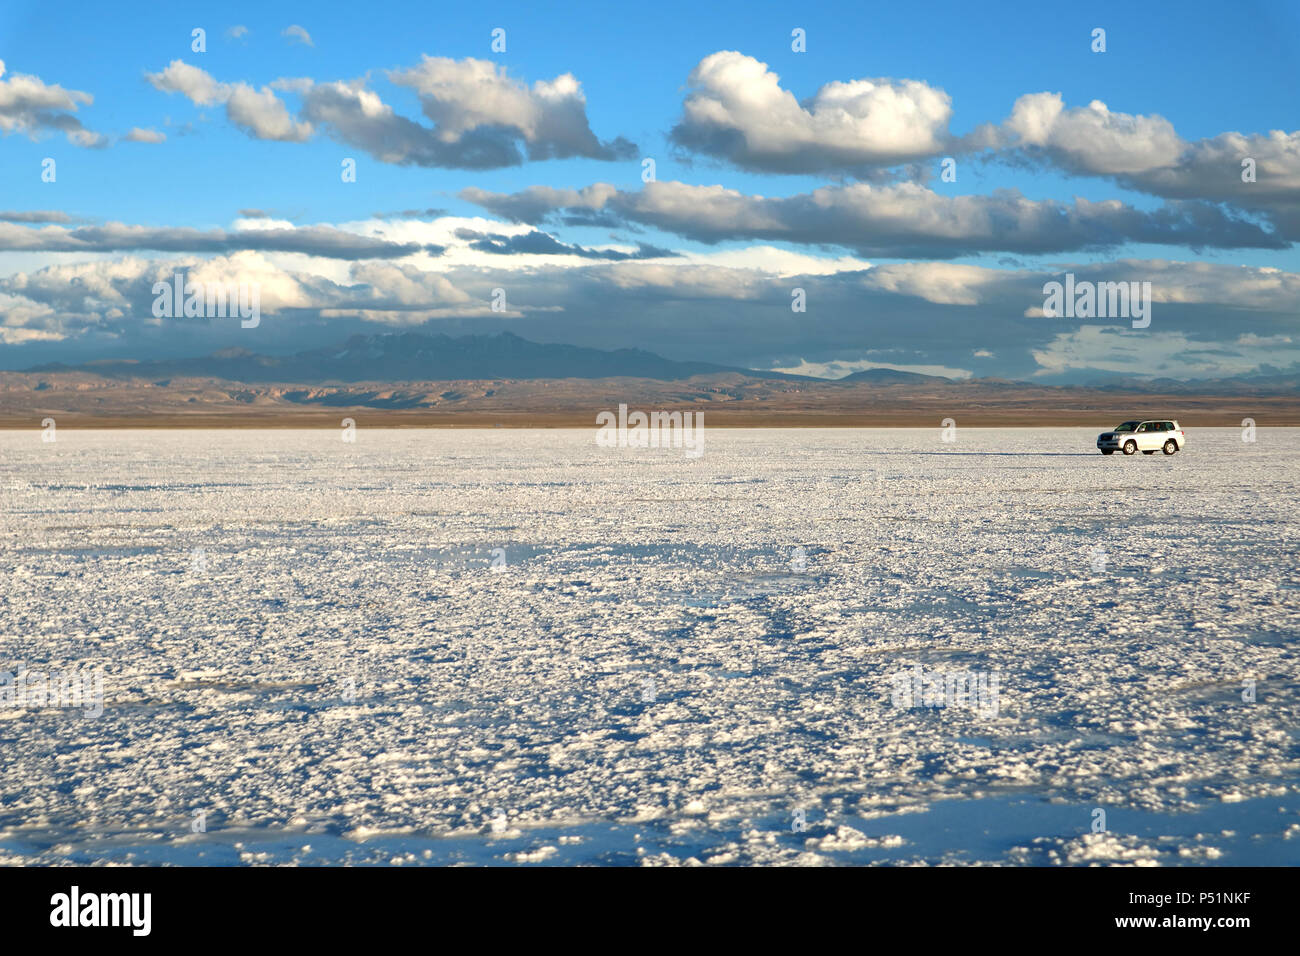 Driving on Salar de Uyuni or Uyuni Salts Flats, Bolivia, South America, UNESCO World Heritage - Stock Image